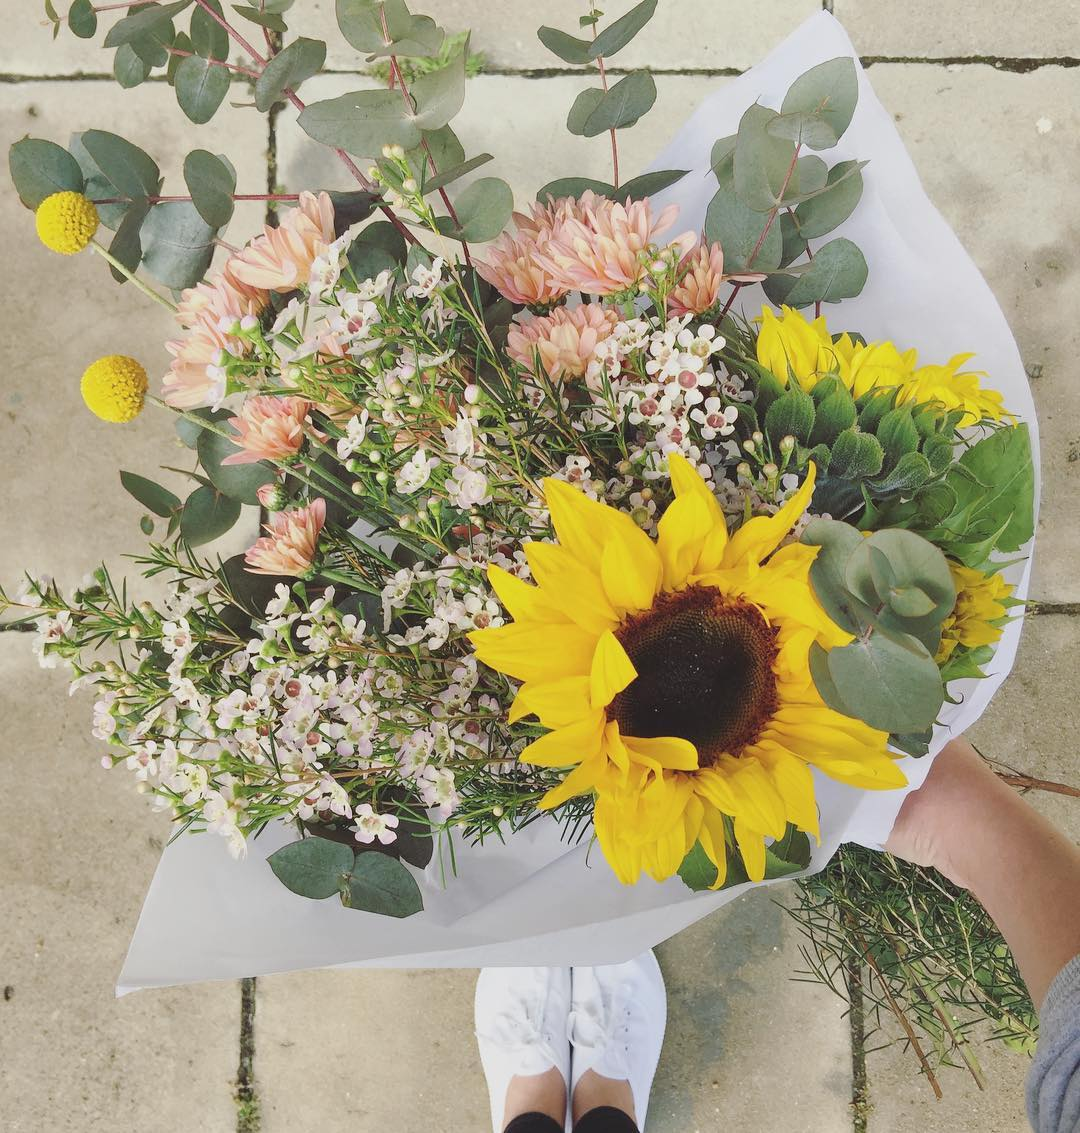 Stay wild flower child 🌺 Today's Posy is lush sunflowers, with billy buttons, lilac wax, dusty pink sprays, and fresh gum. Order before 12:30pm for delivery this afternoon 🌿Link in bio.